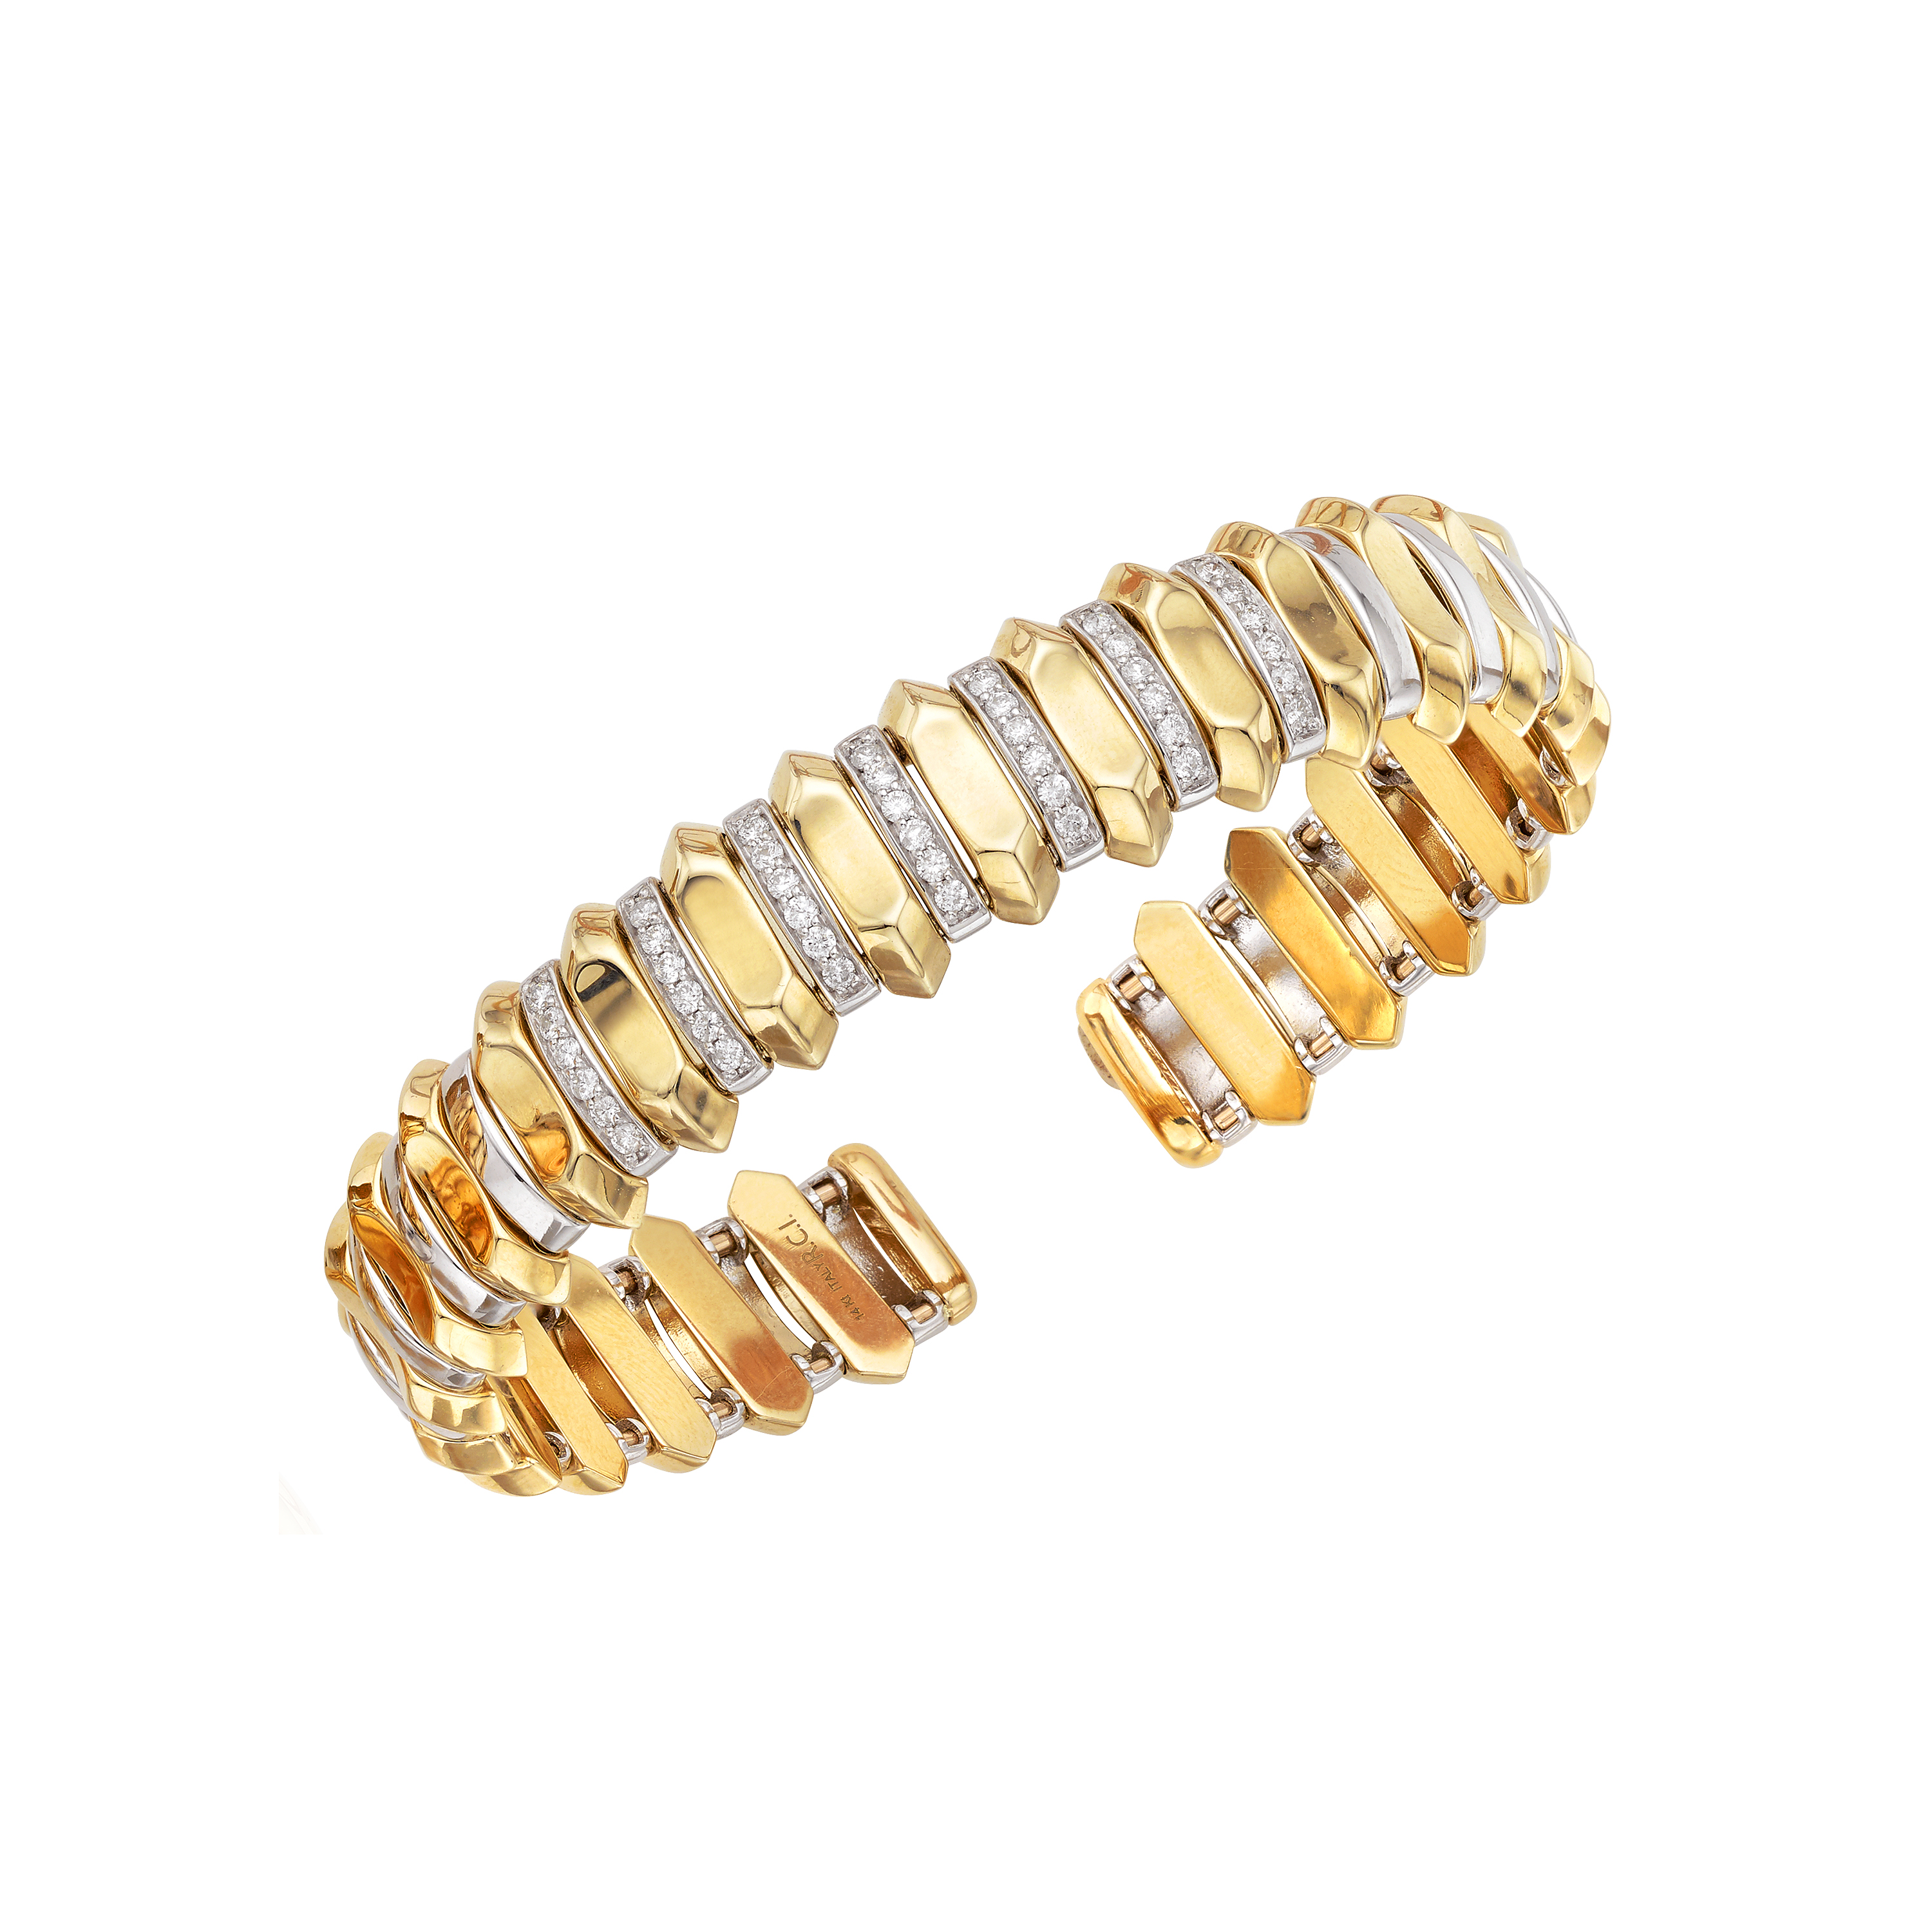 14K Yellow & White Gold Bangle Bracelet Wyatt's Jewelers Seattle, WA